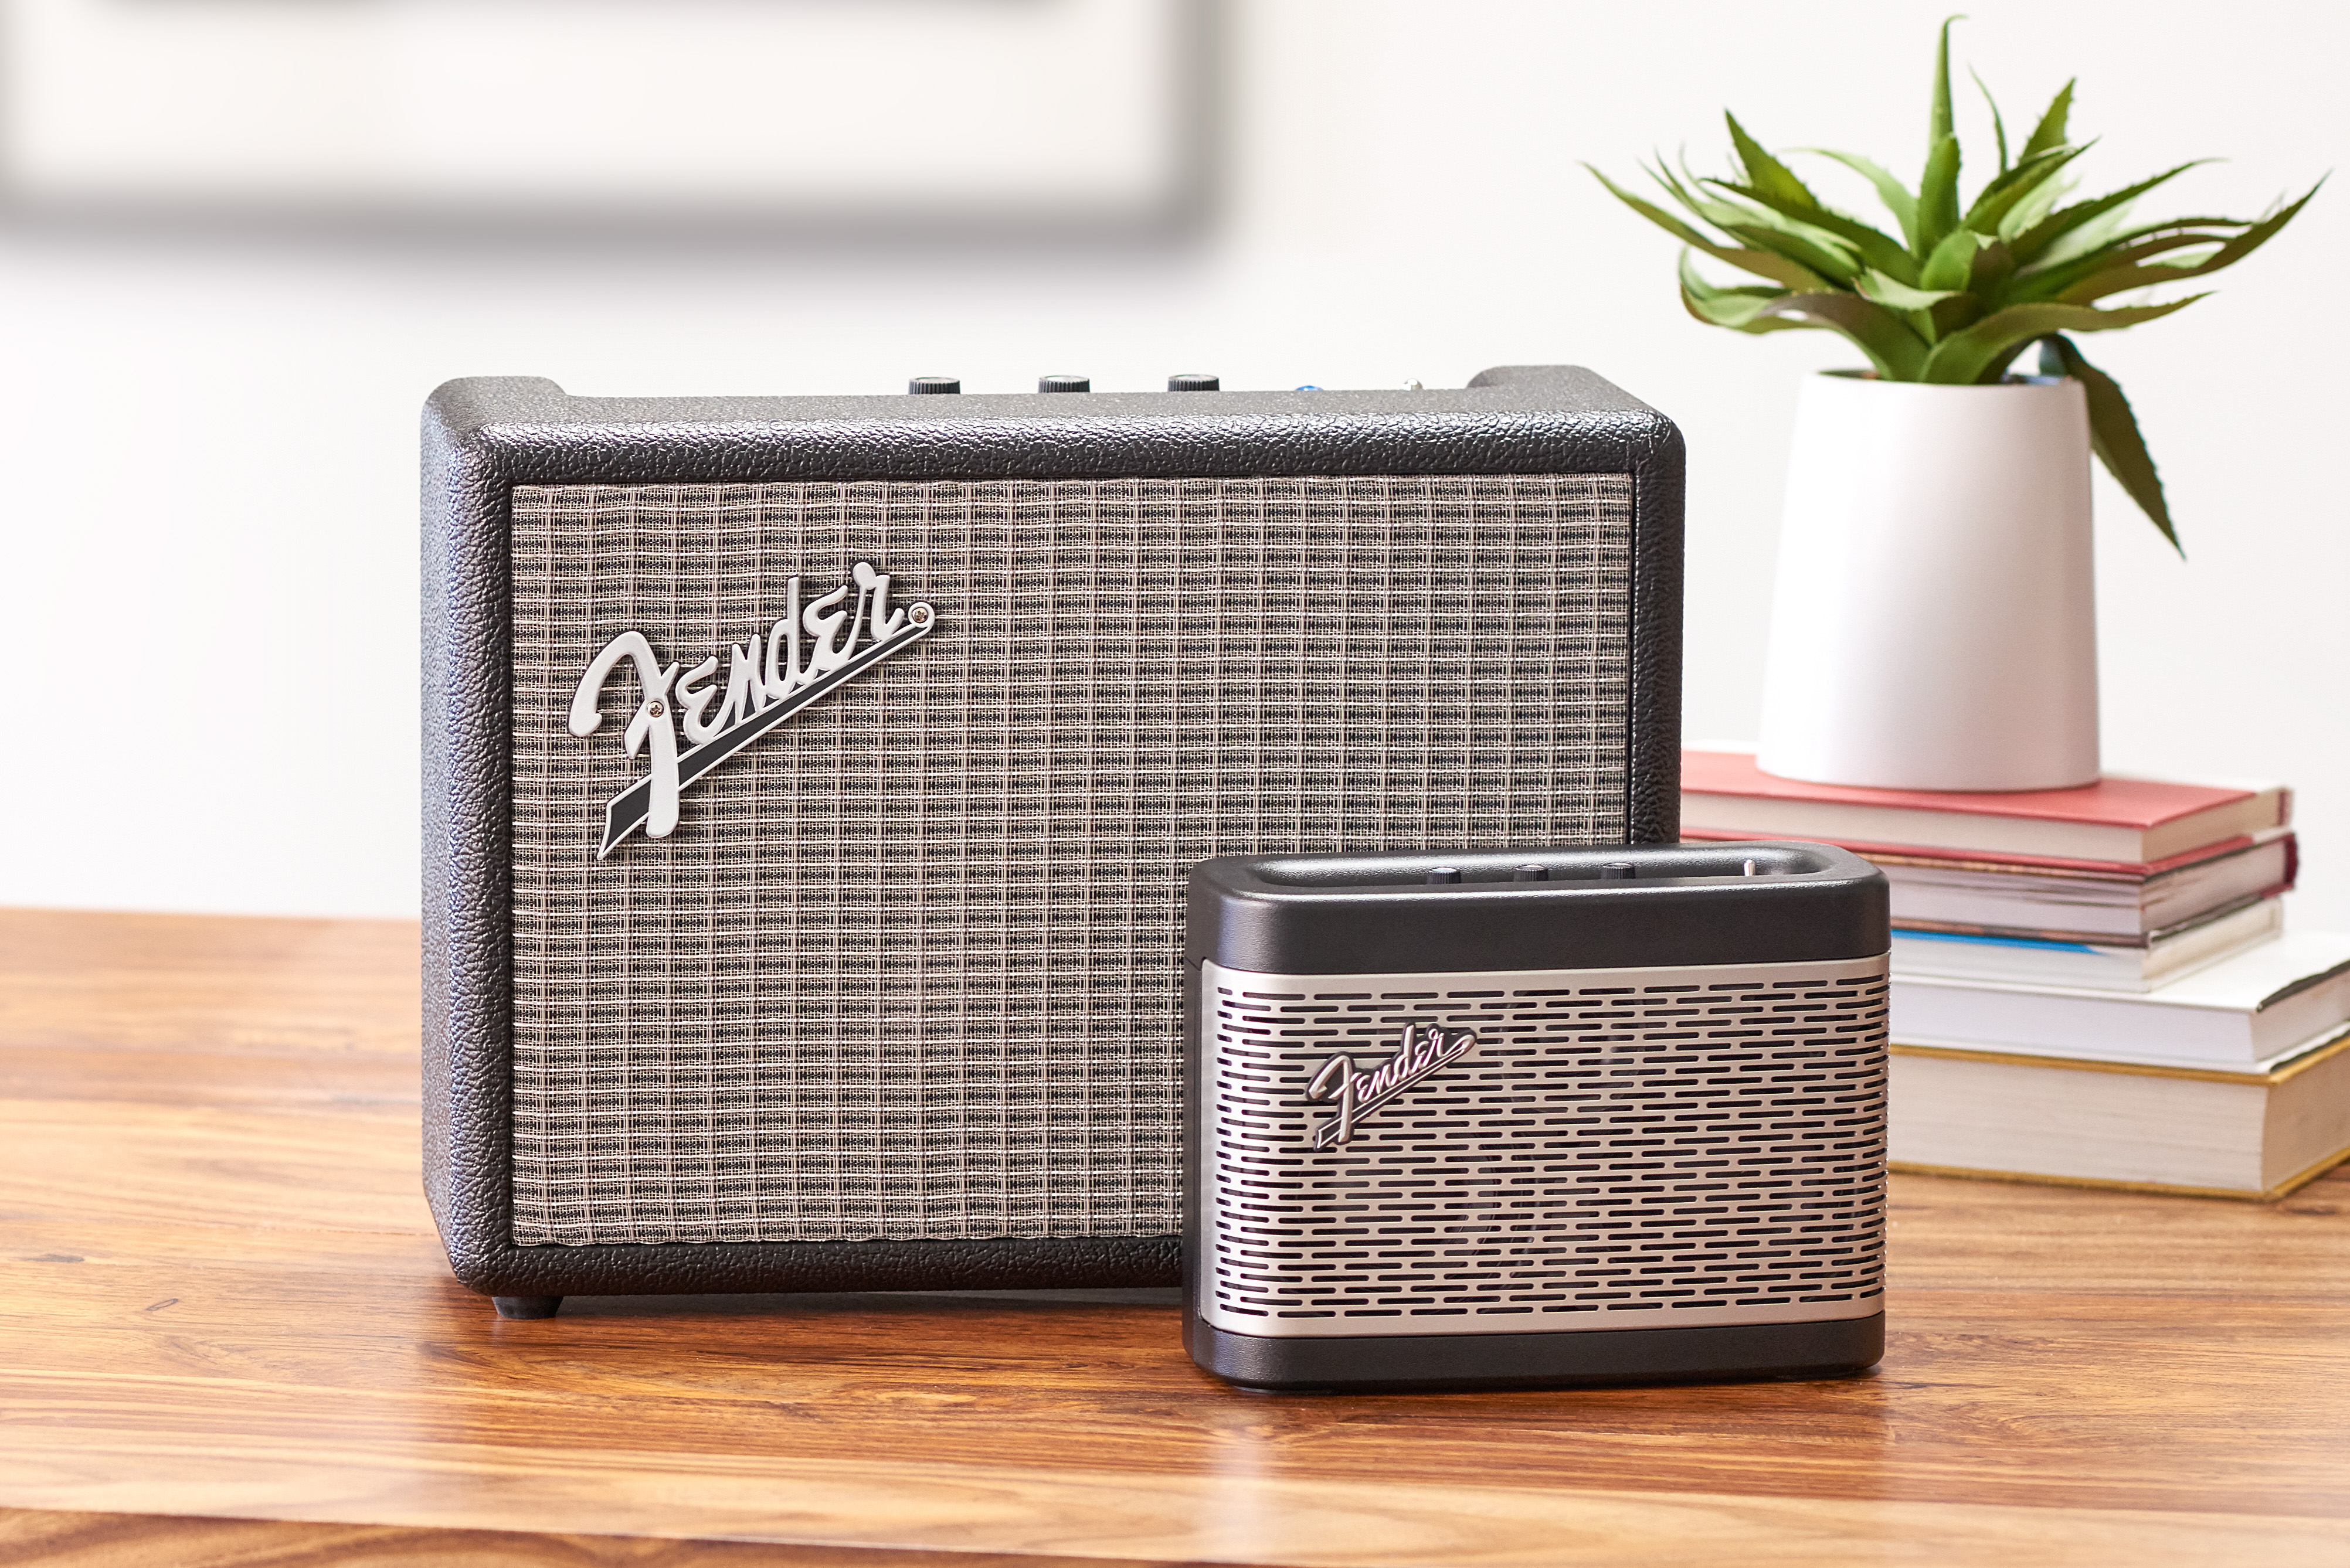 fender 39 s monterey and newport bluetooth speakers offer classic looks and tone. Black Bedroom Furniture Sets. Home Design Ideas